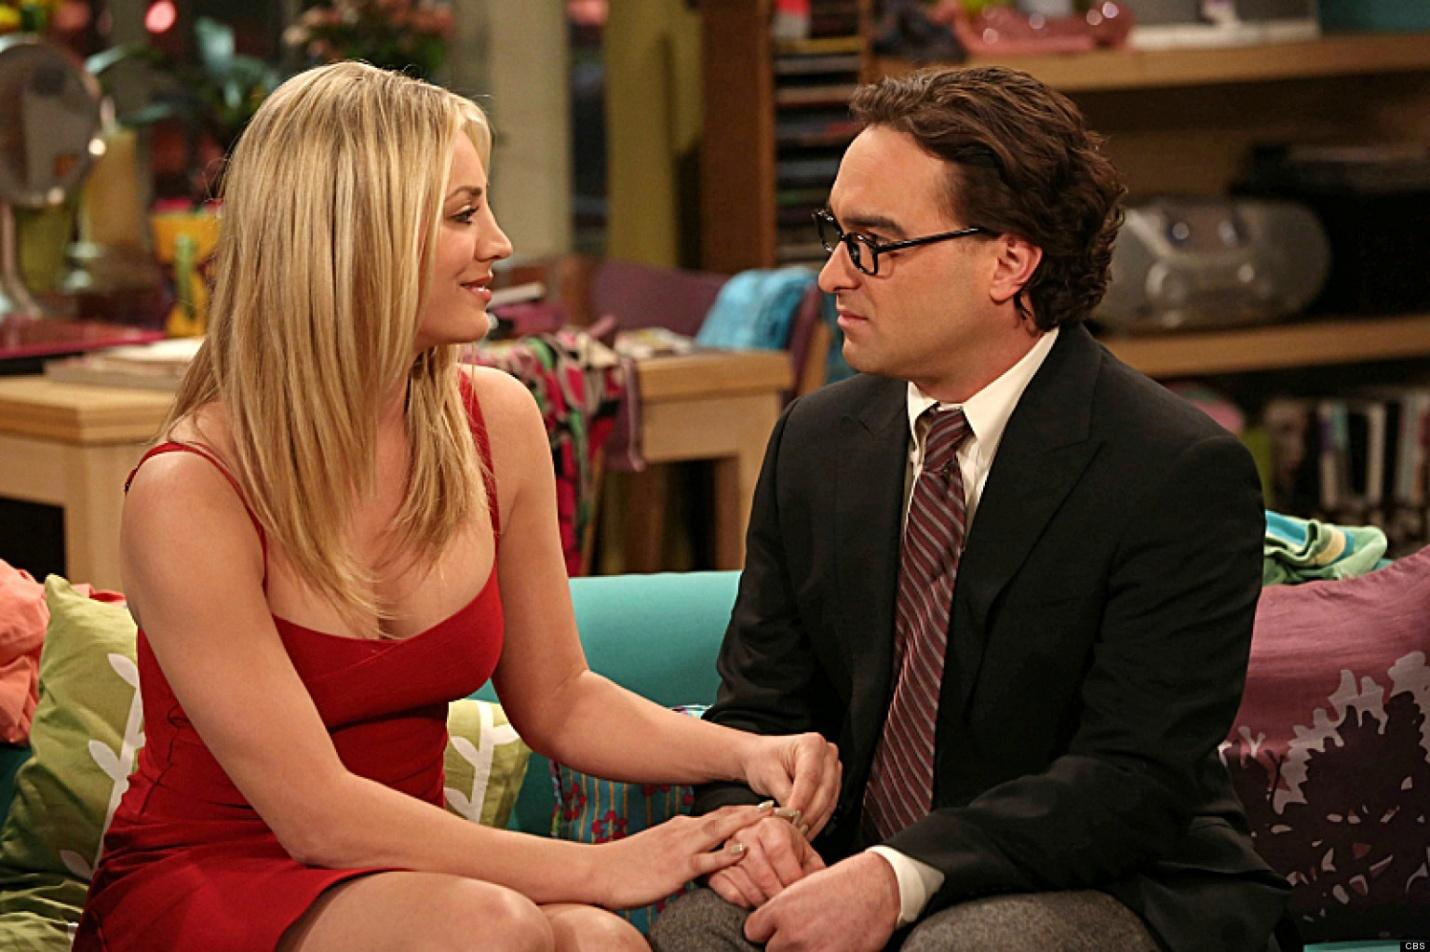 TV Couples, Best TV Couples, Relationship Goals, Frank and Claire Underwood, Carrie and Mr. Big, TV Series Couples, House of Cards, Sex and the City, Chuck and Blair, Gossip Girl, Mike and Rachel, Suits, . Leonard and Penny, The Big Bang Theory, Derek and